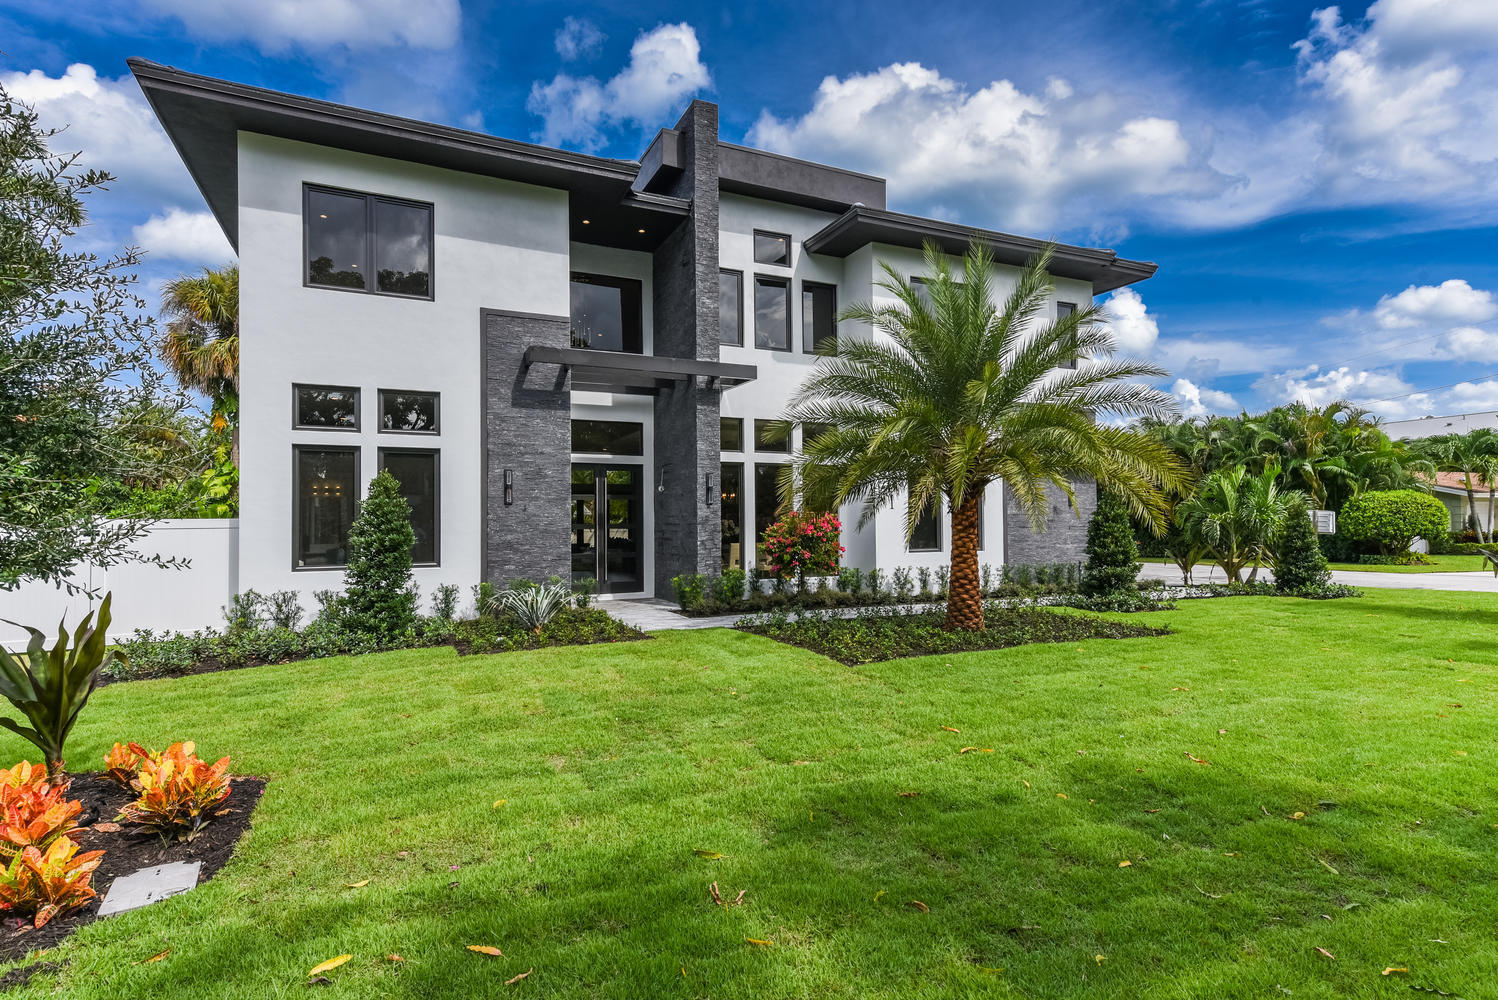 Home for sale in East Delray - Hoffman Village Delray Beach Florida